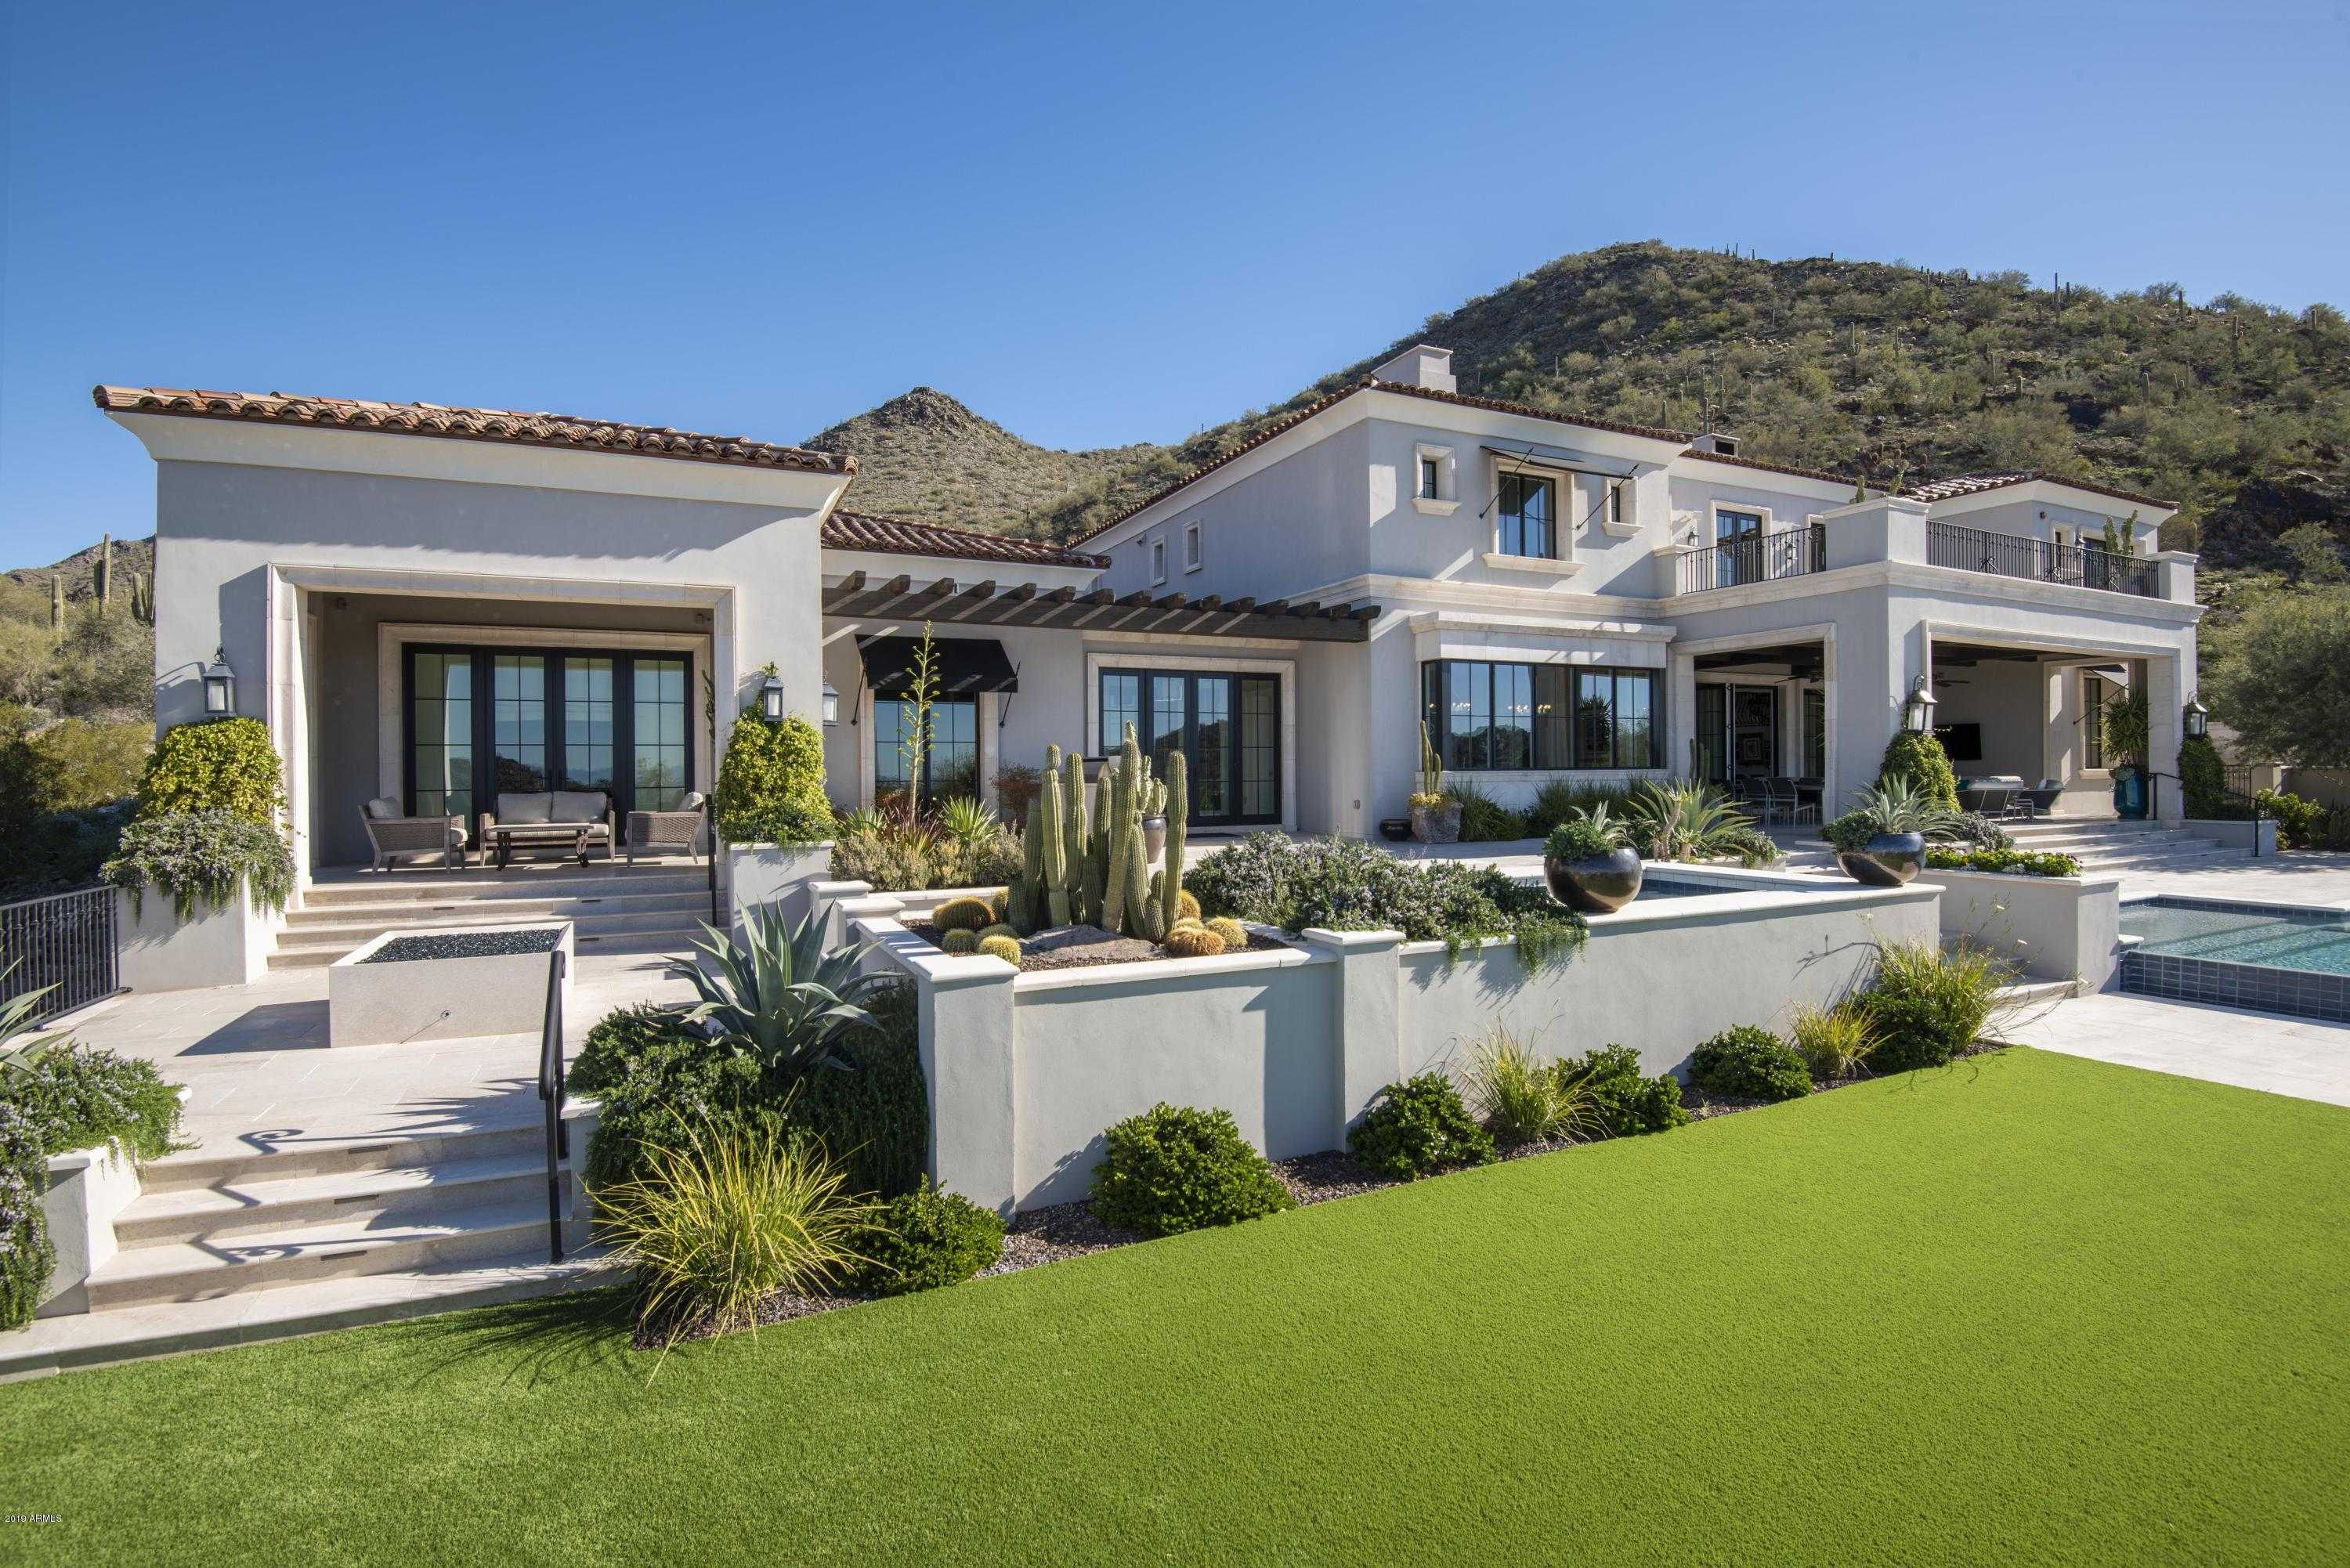 $8,495,000 - 5Br/6Ba - Home for Sale in Silverleaf At Dc Ranch, Scottsdale